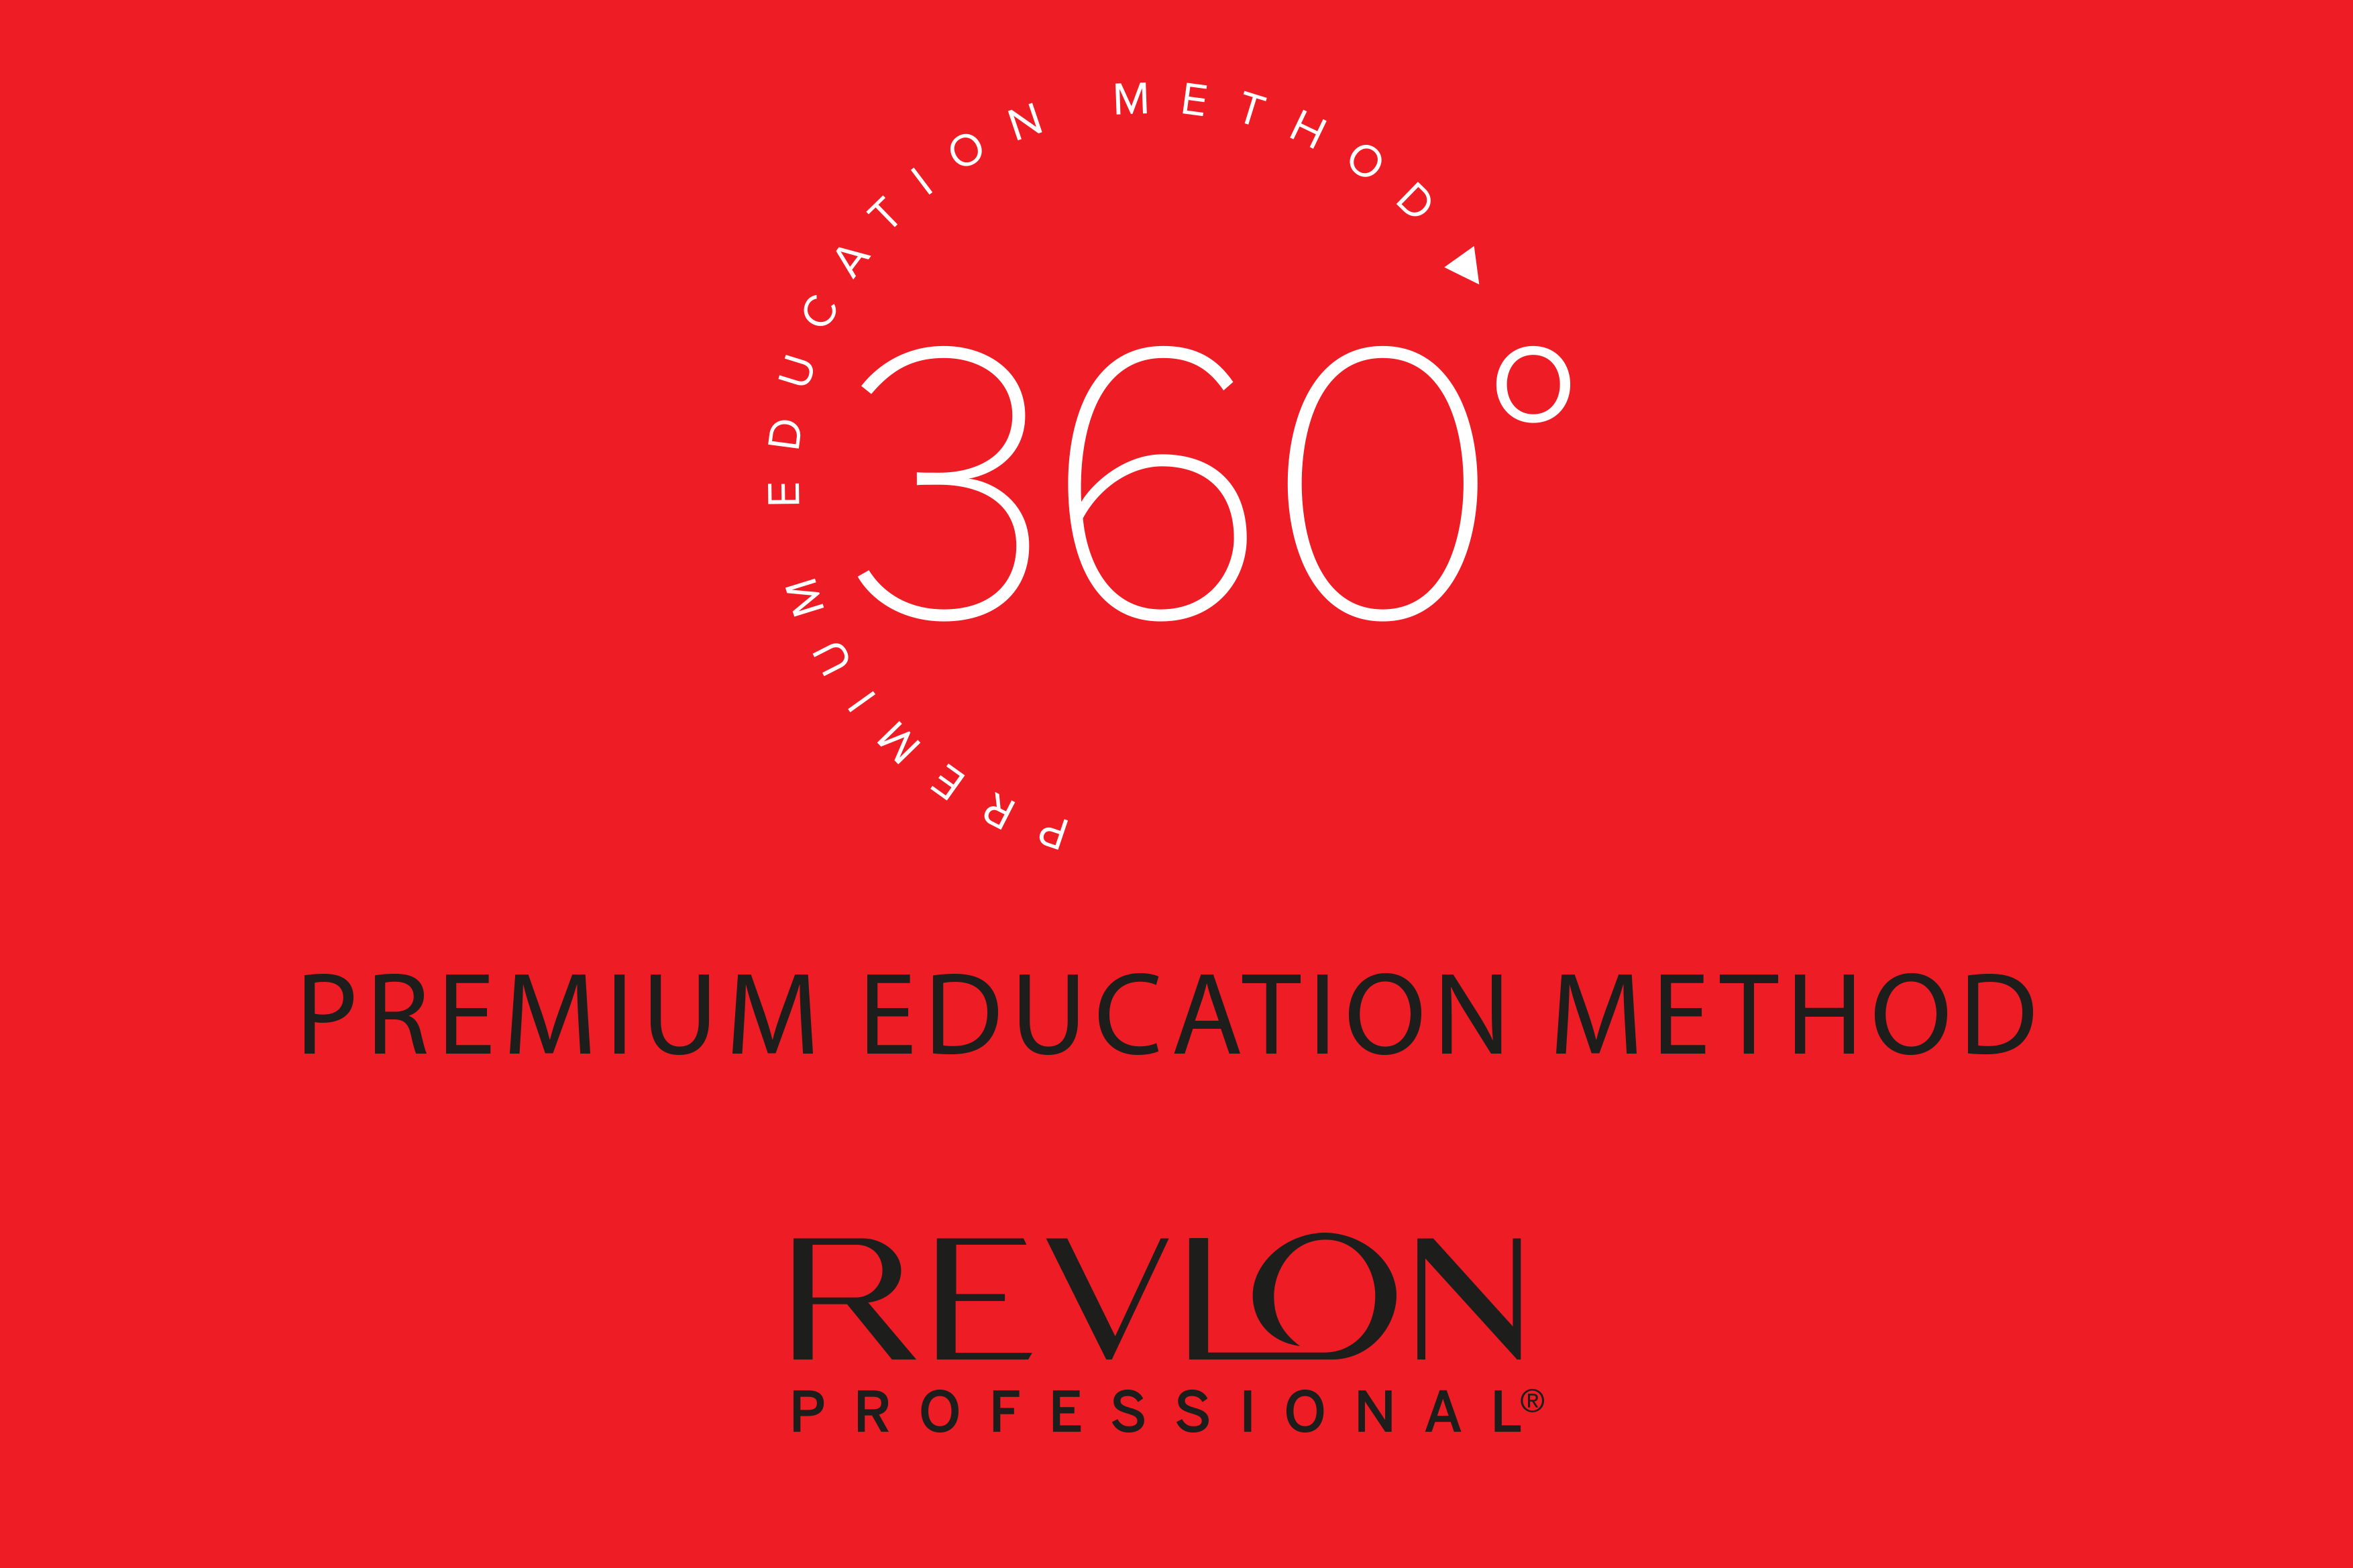 Školenie PREMIUM EDUCATION METHOD REVLON PROFESSIONAL 360˚